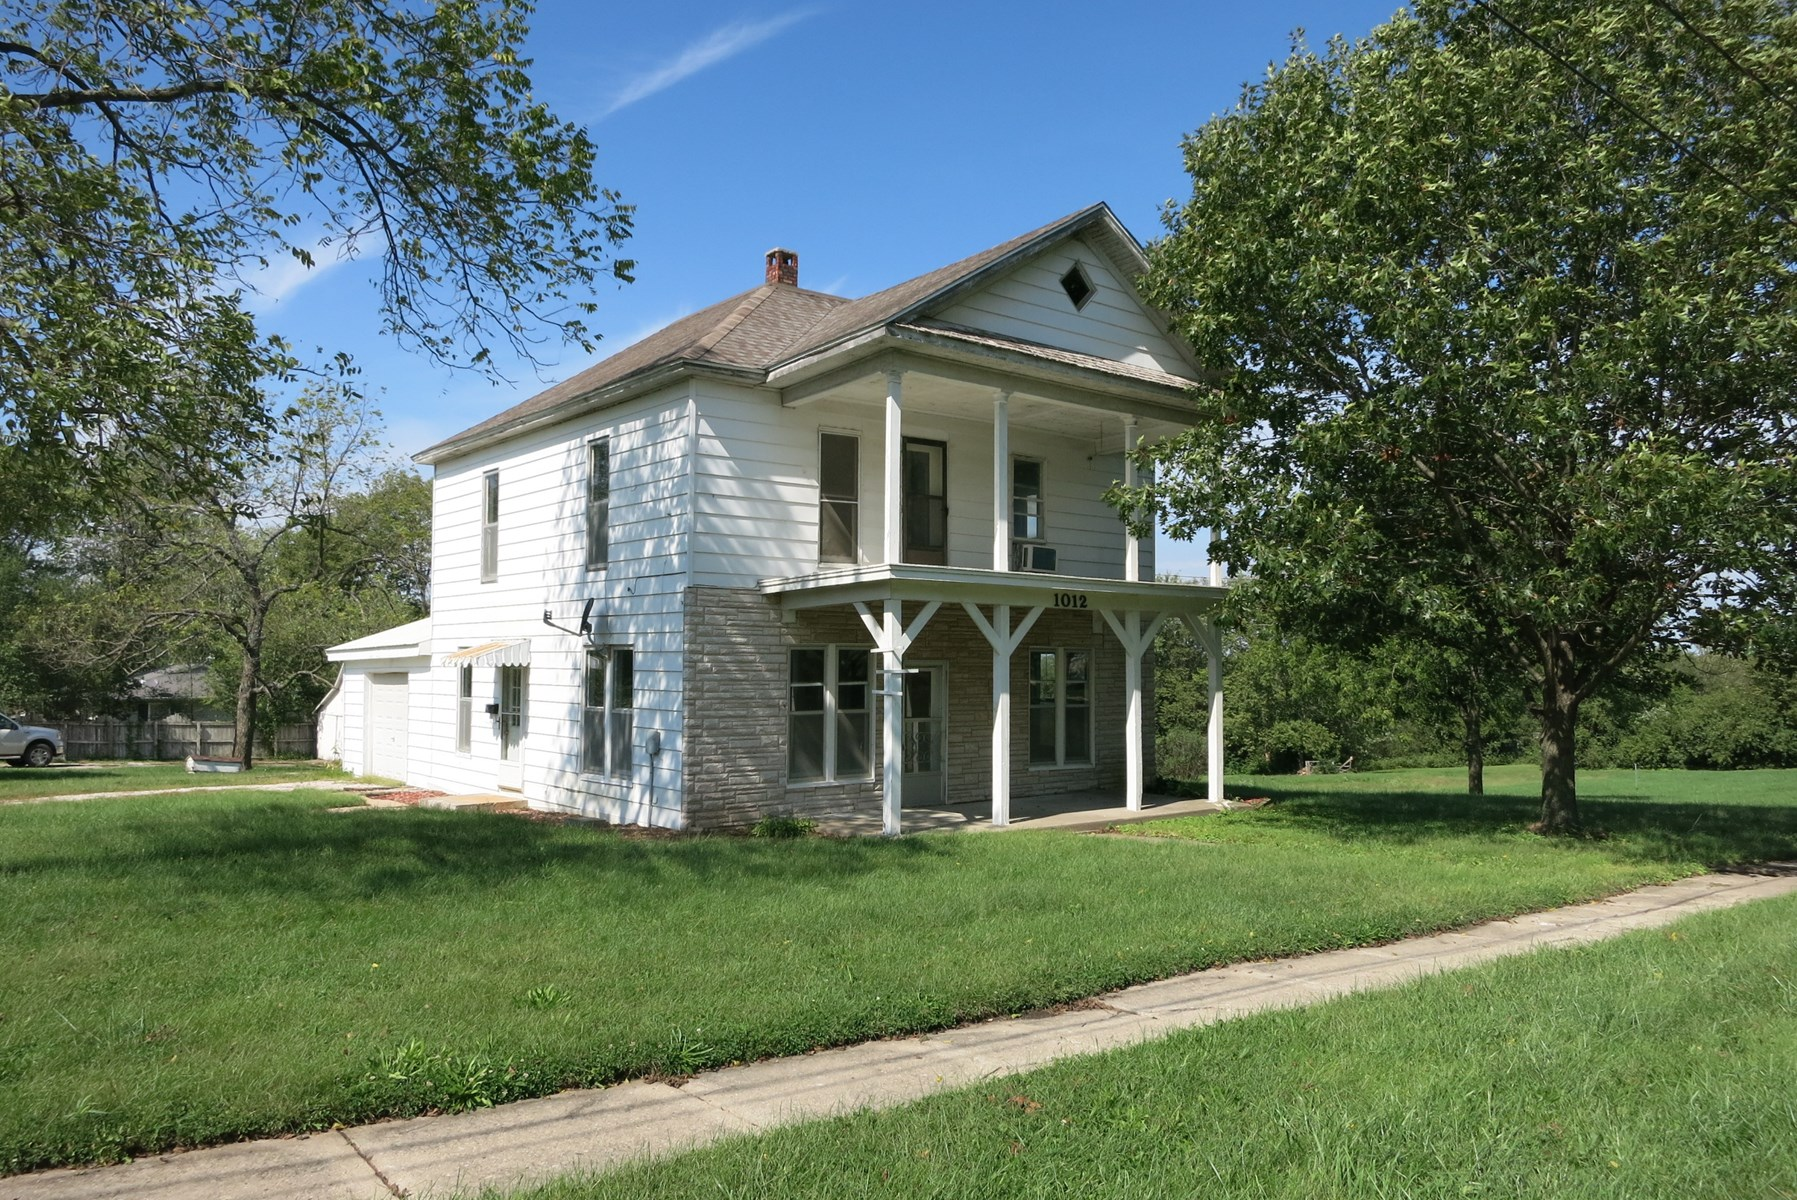 For Sale 100 Year Old Home on 1.3 Acres